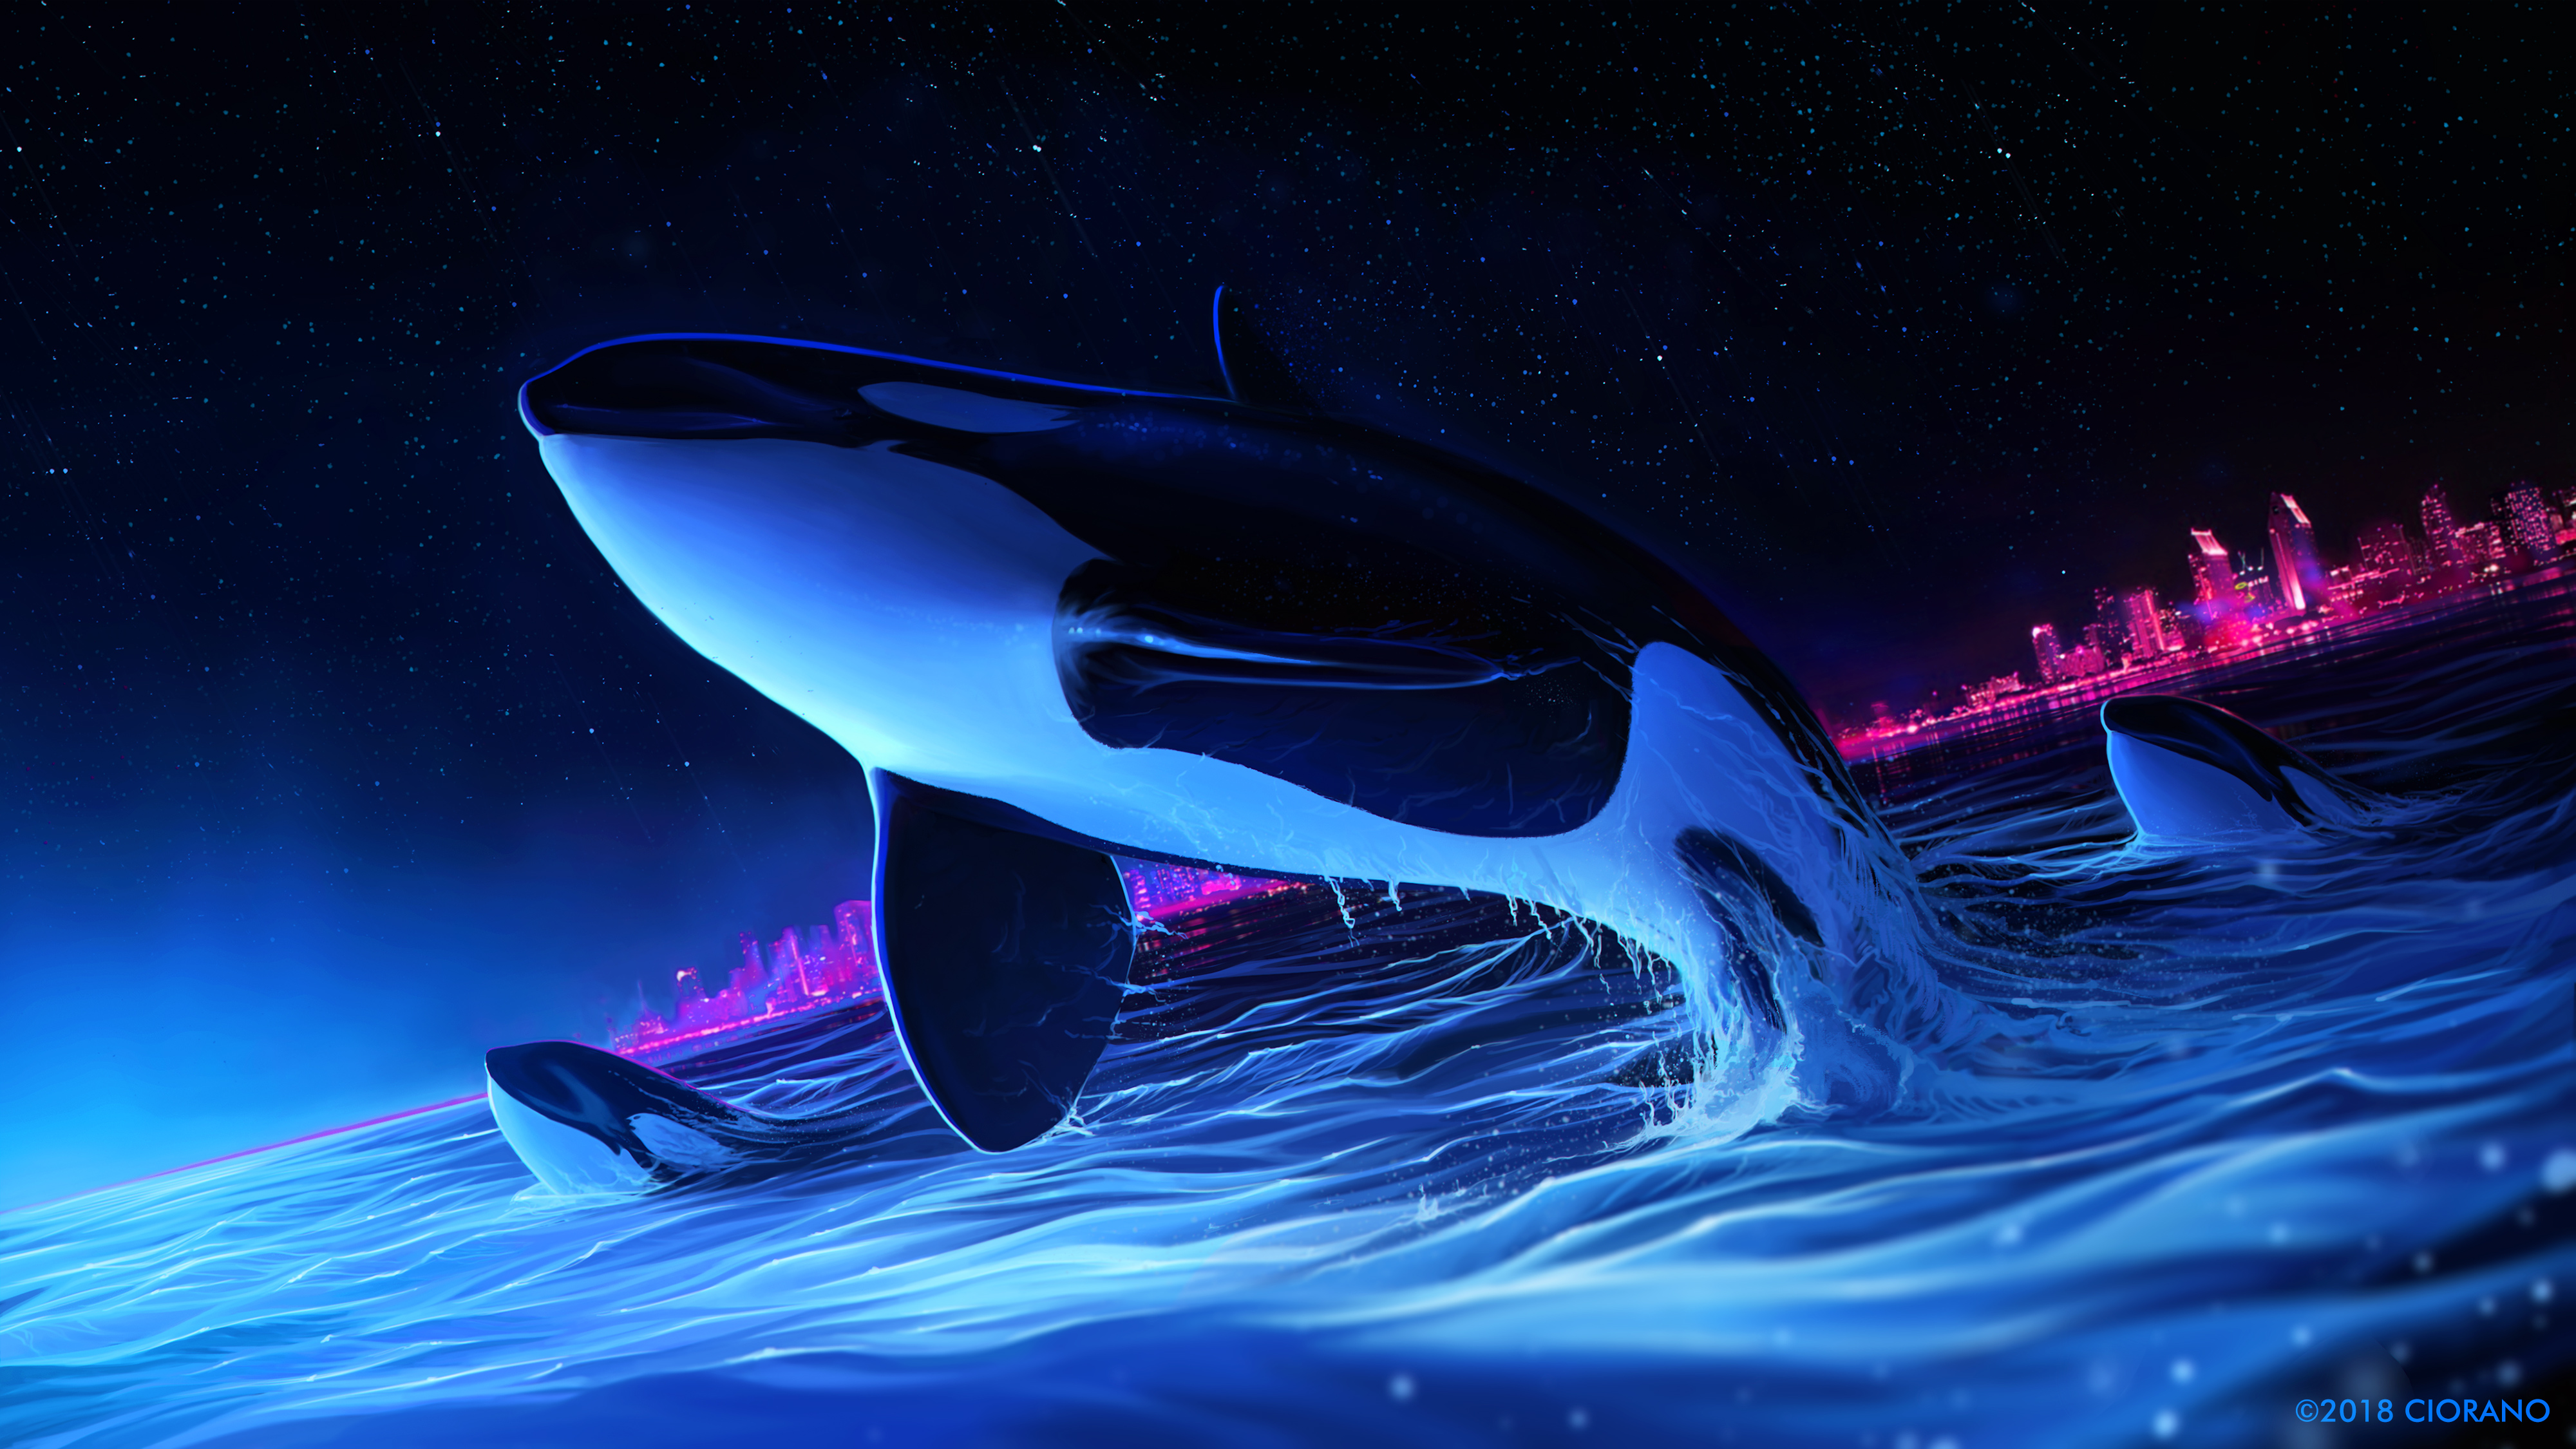 1242x2688 Dolphin Night Orca Whale Digital Art Iphone Xs Max